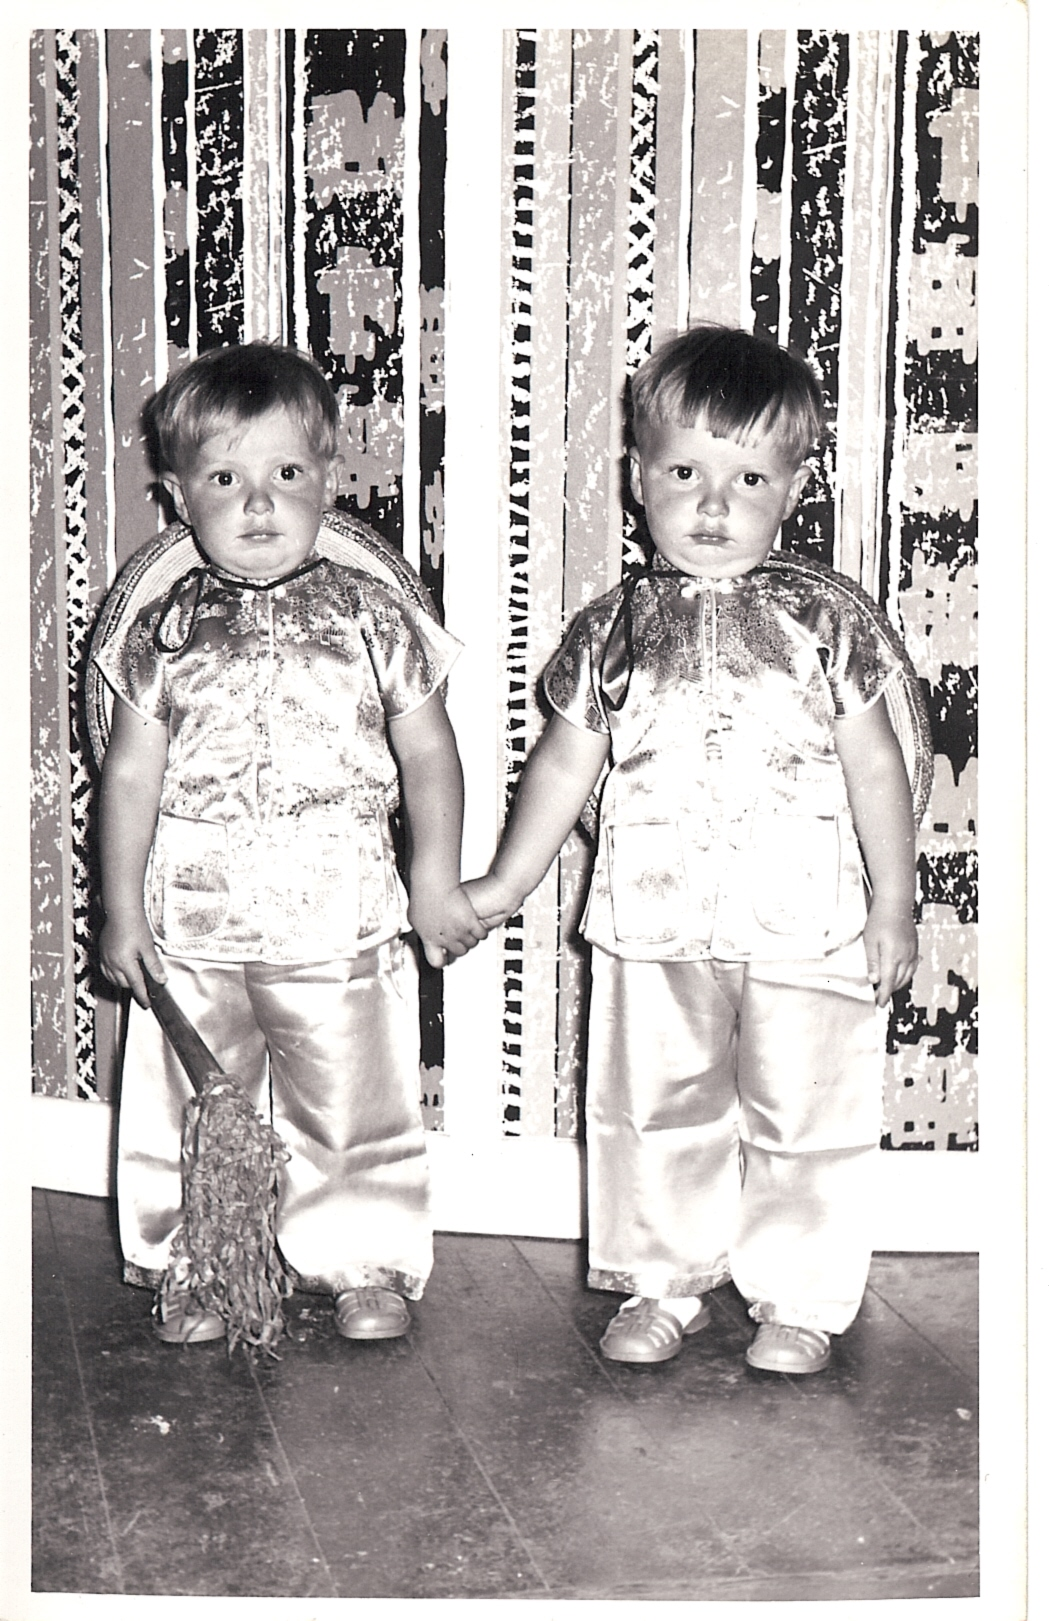 Barry with twin brother, before they new much about their sexuality.